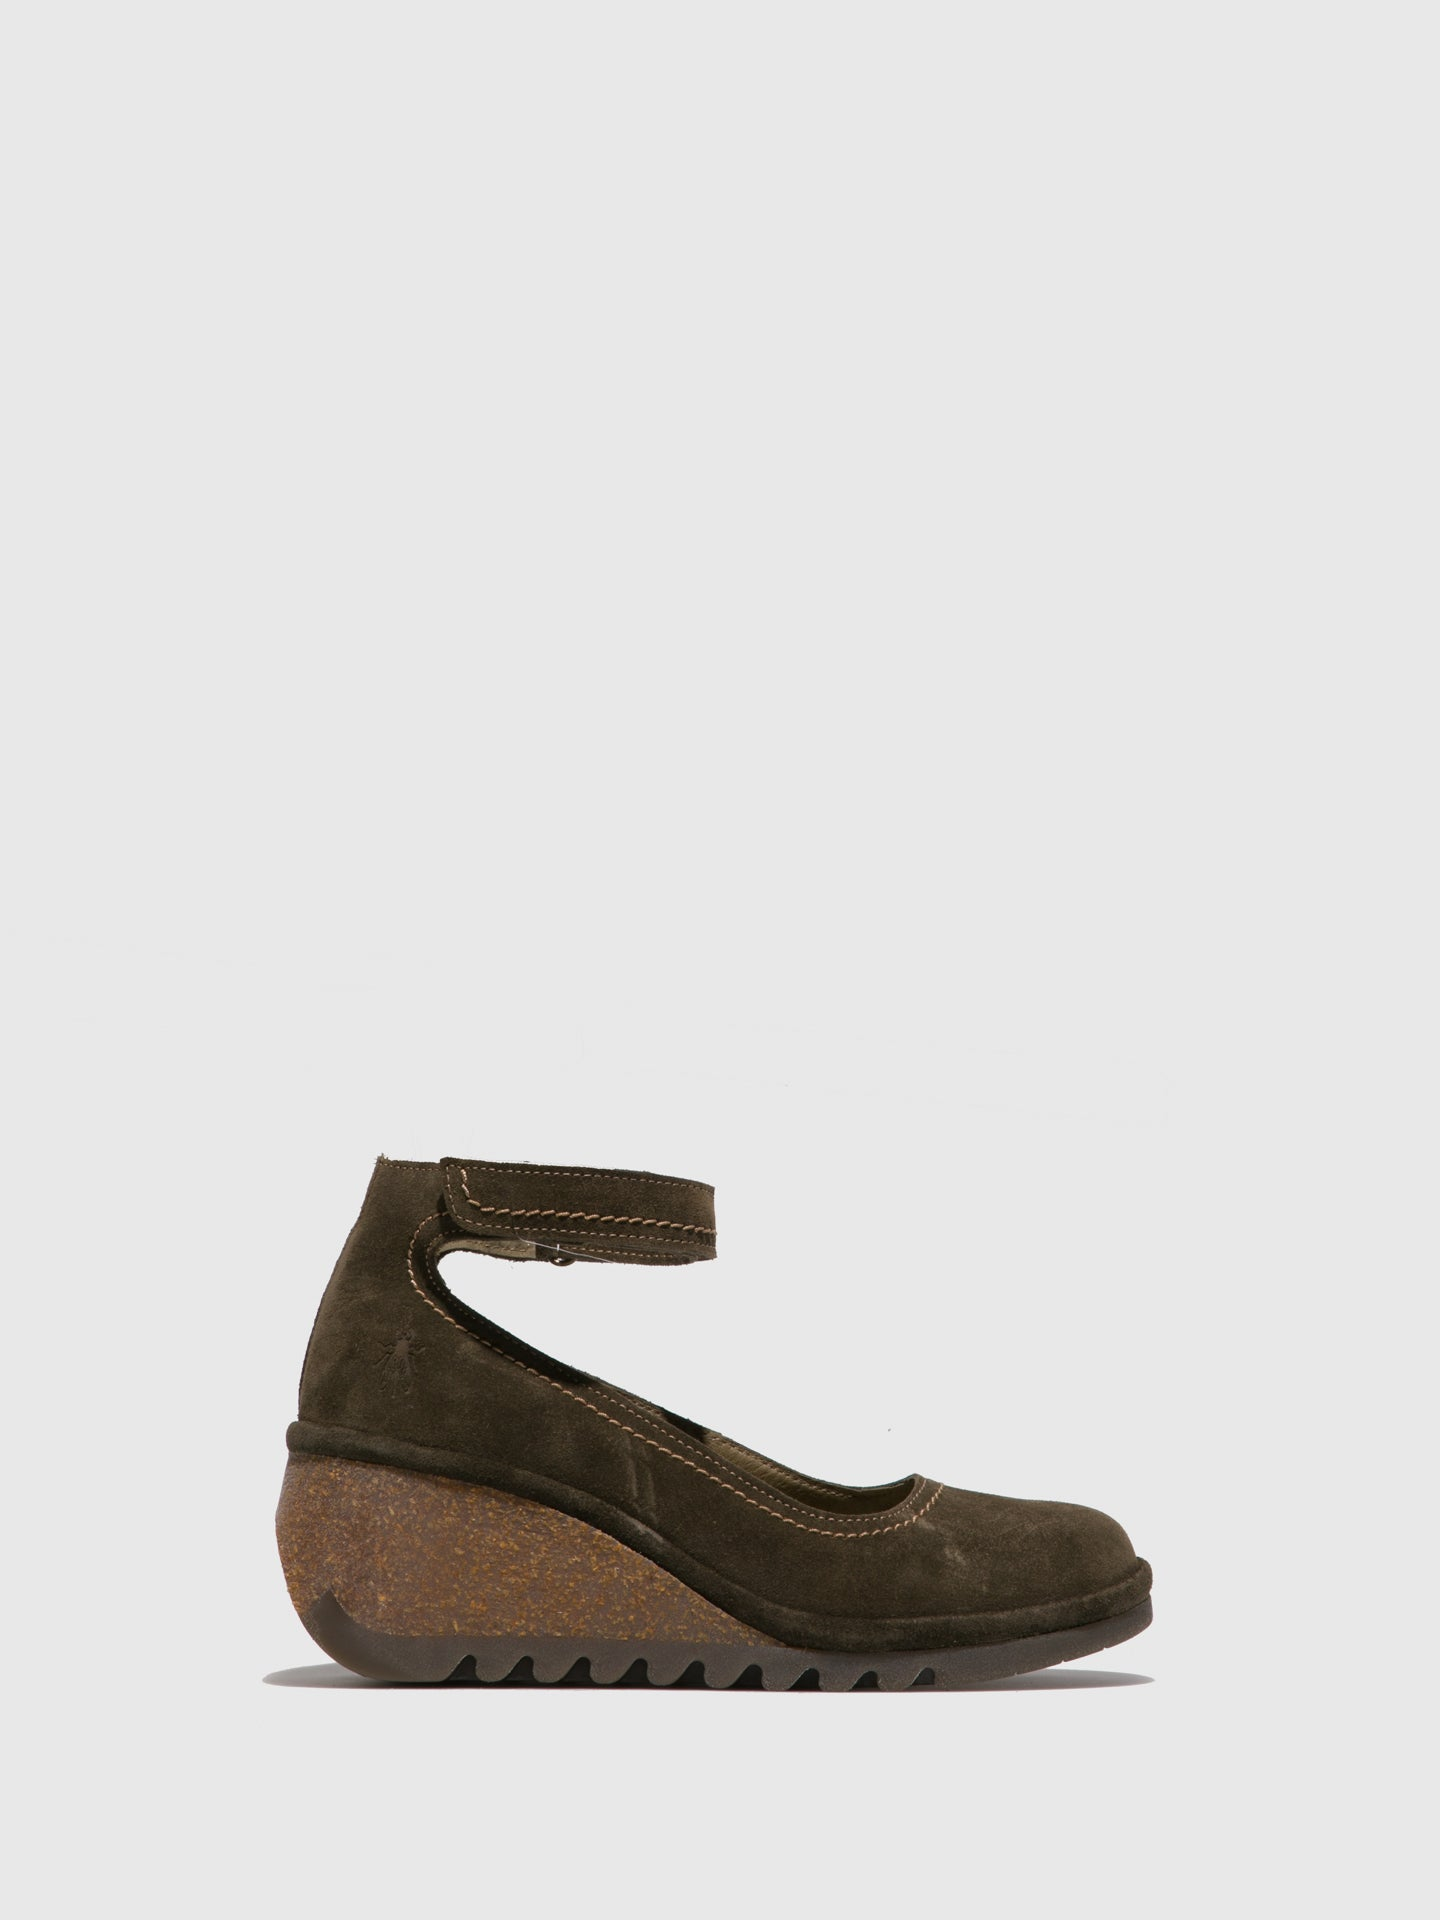 Fly London Olive Wedge Shoes